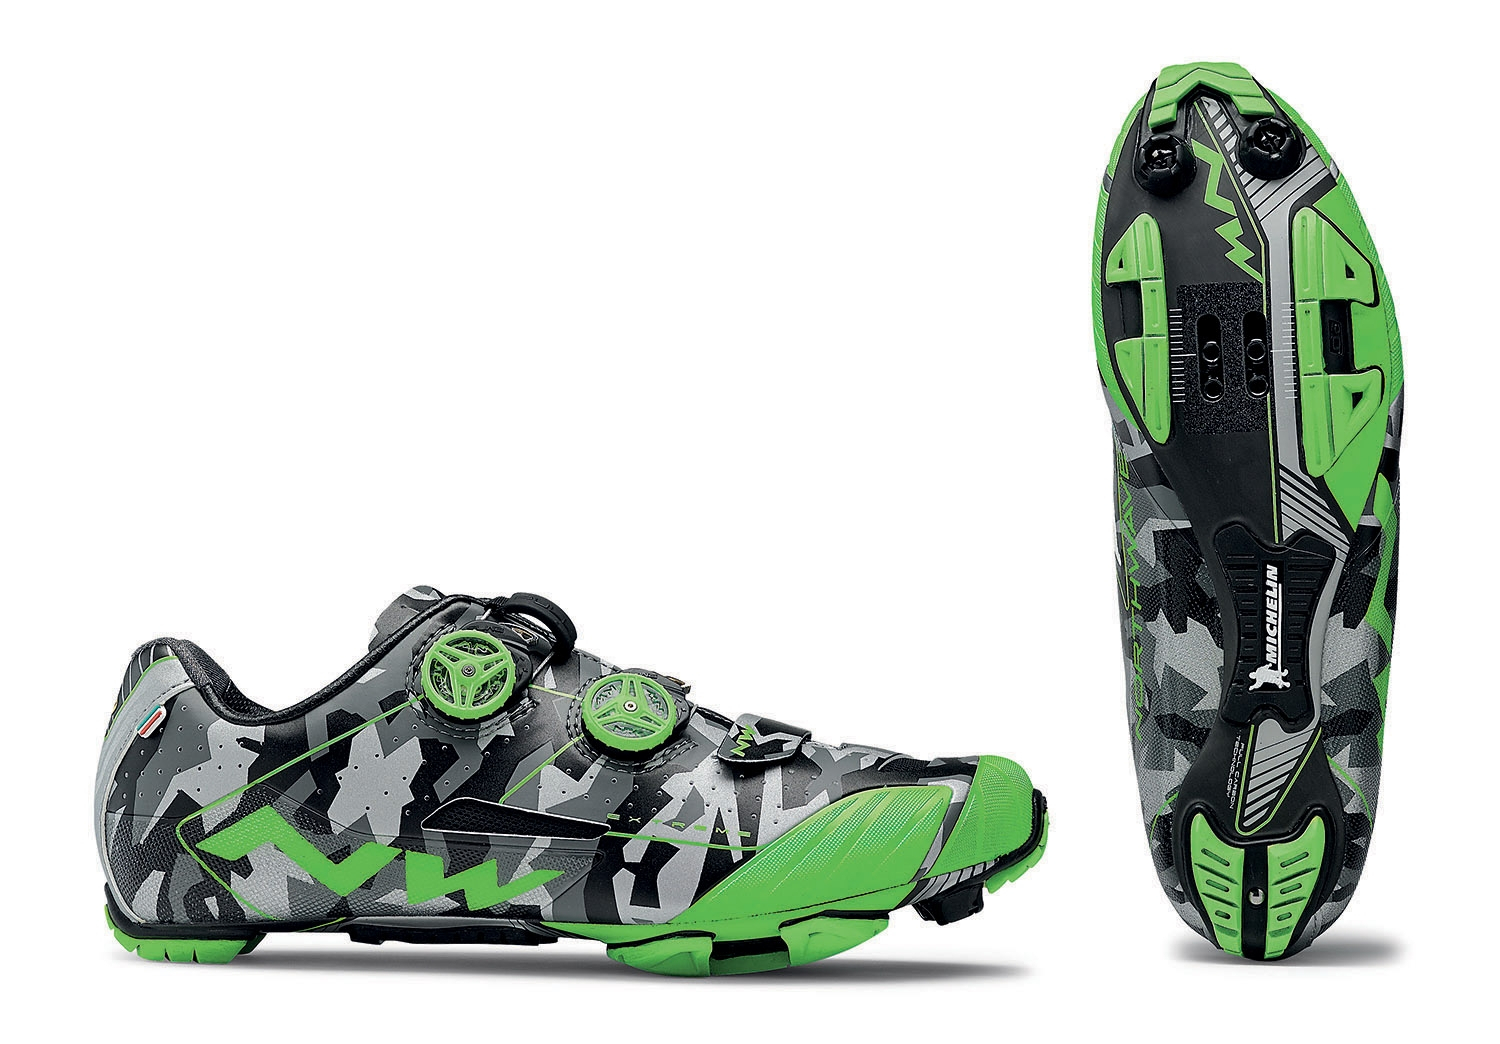 NORTHWAVE Man bike shoes EXTREME XC reflective camo/green fluo